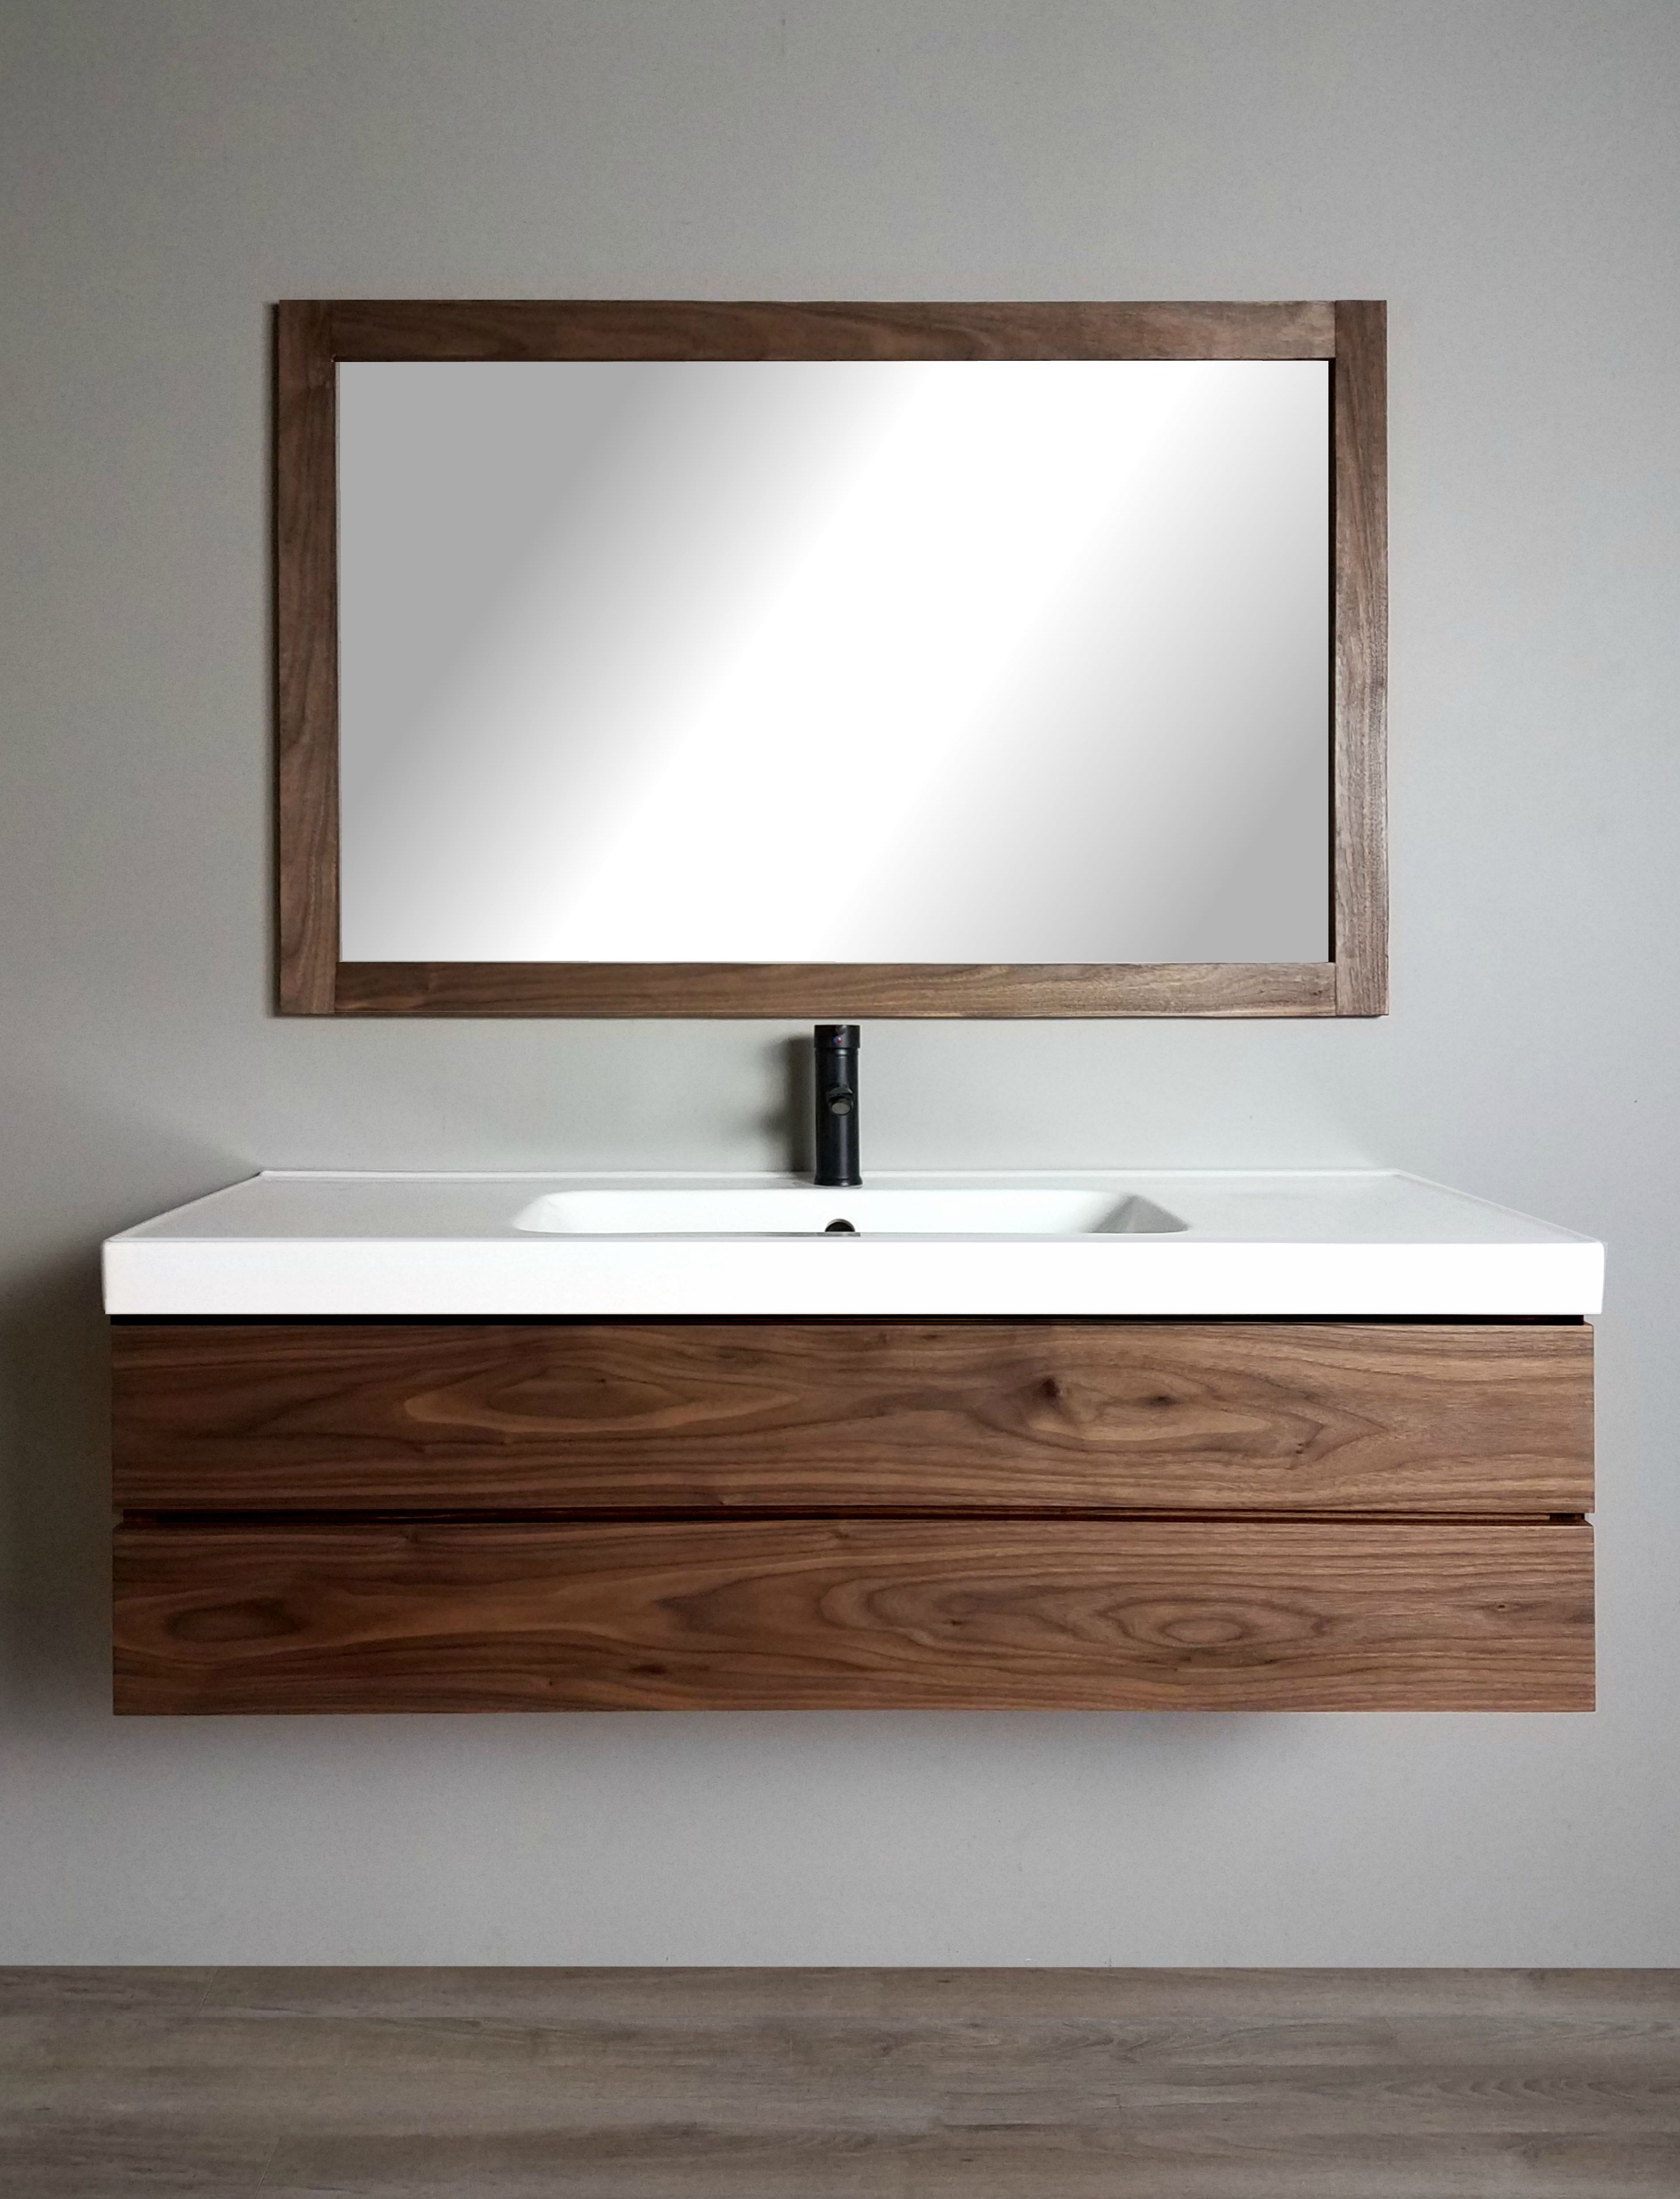 Solid walnut floating vanity